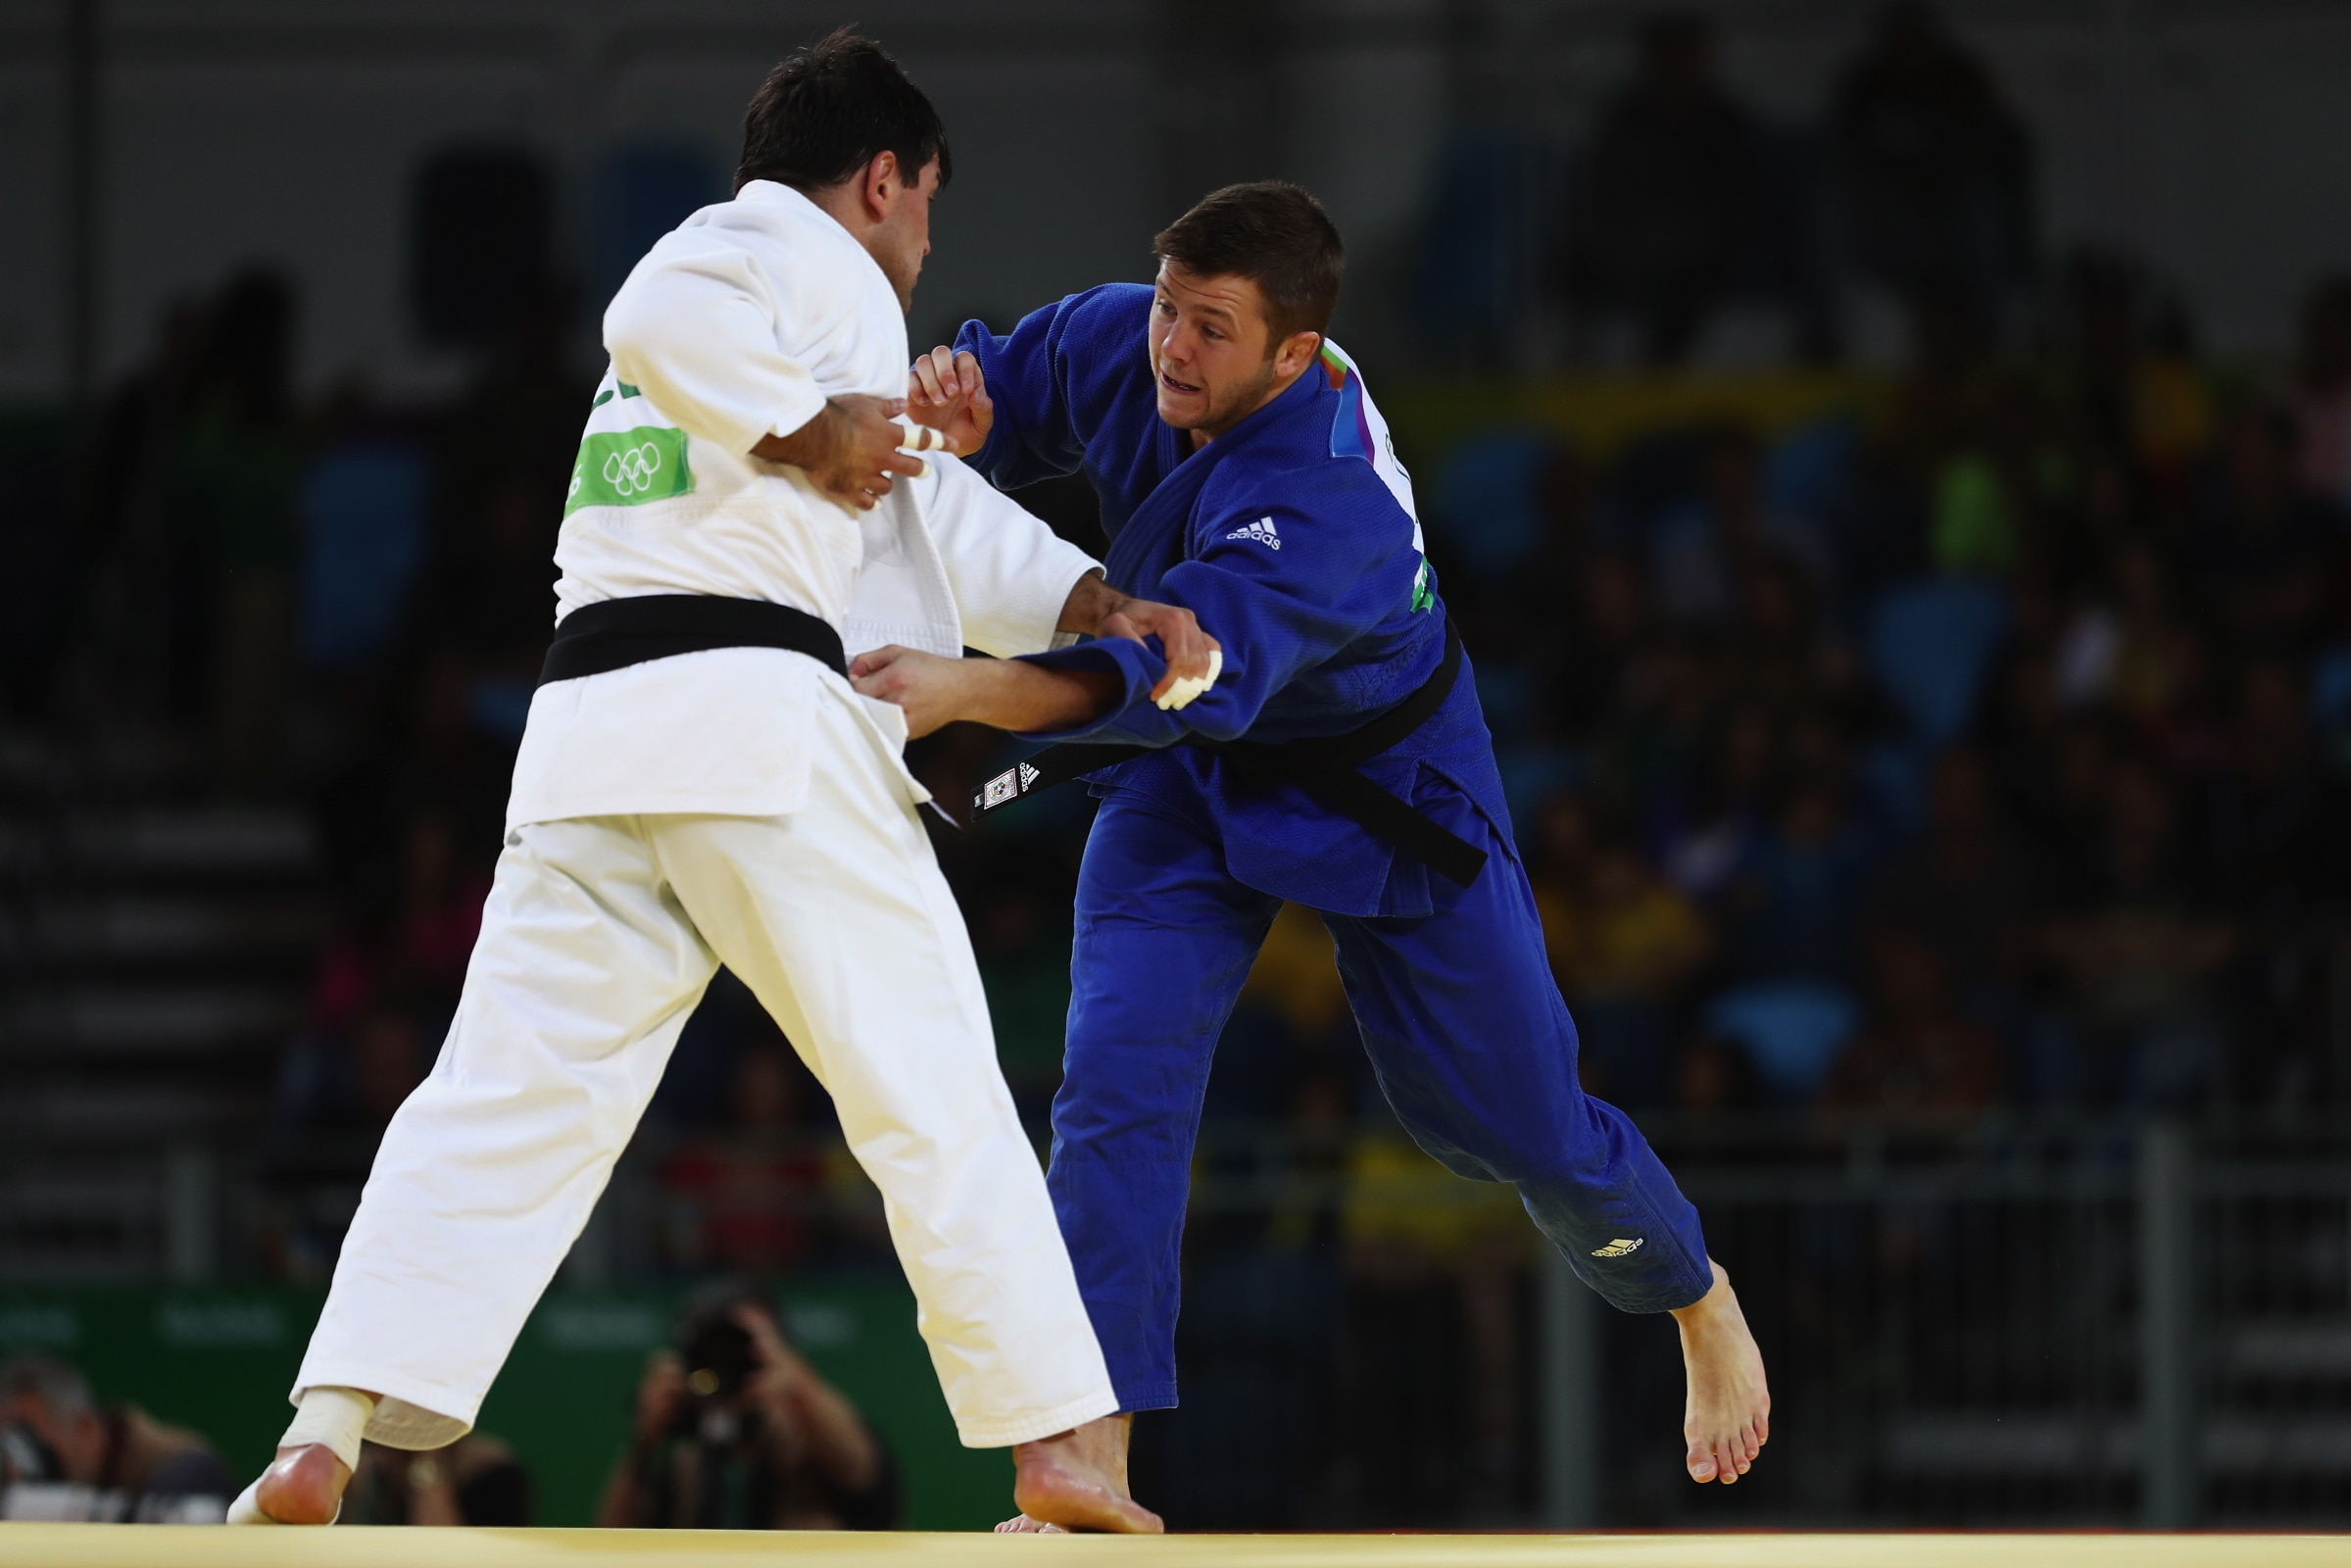 Judo - 90 - 100kg (half-heavyweight) Men